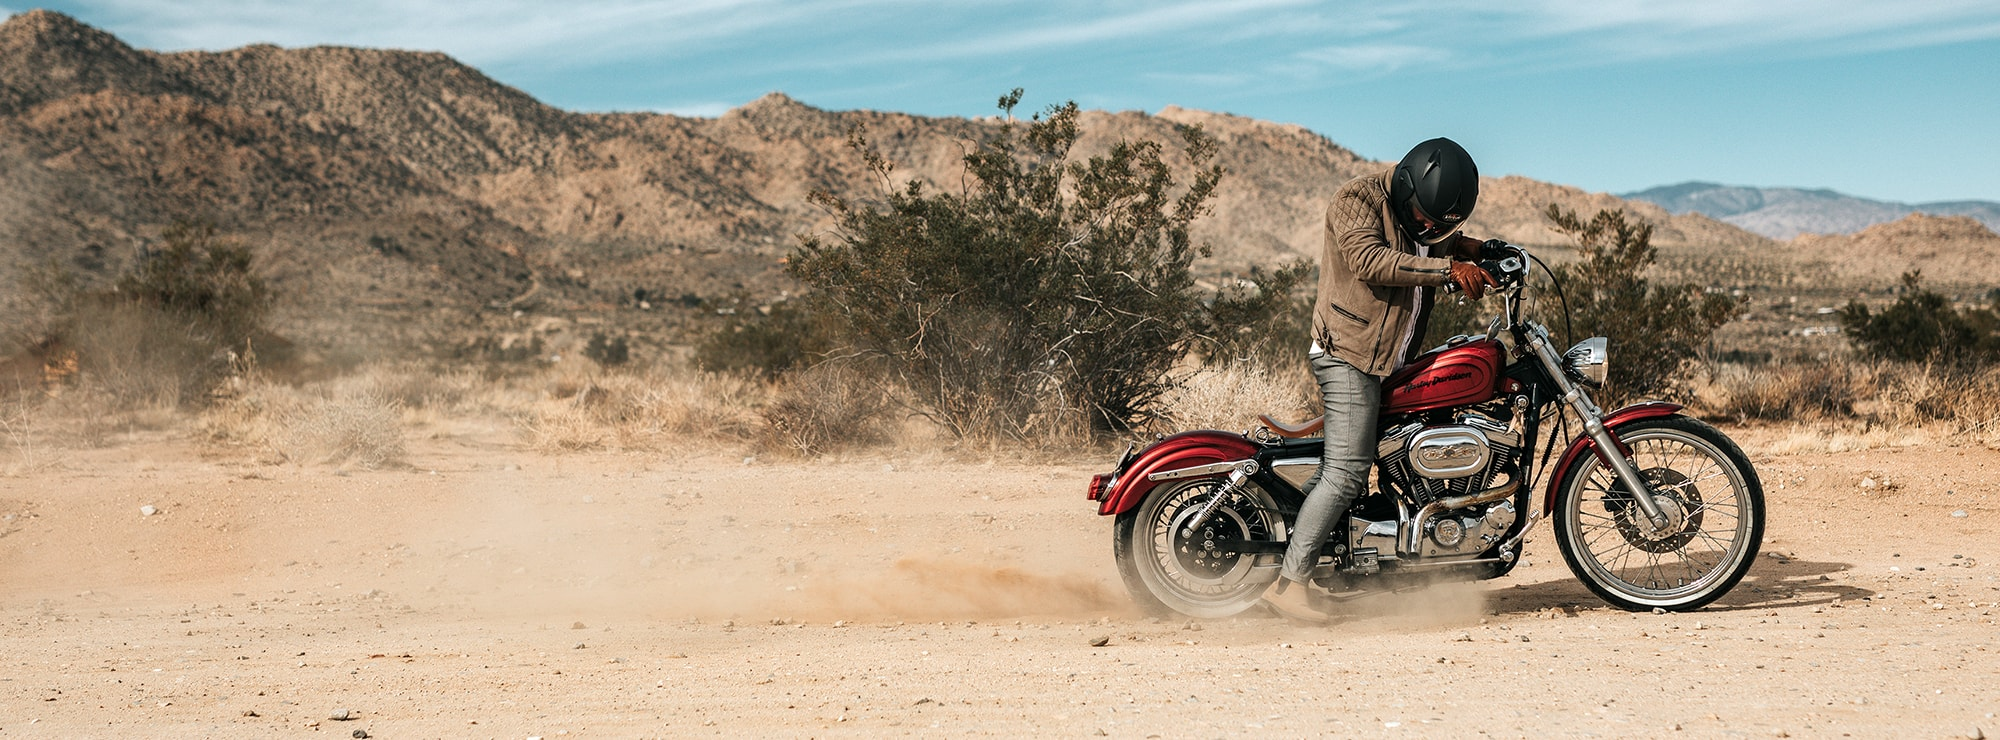 Man on Harley Davidson motorcycle in desert